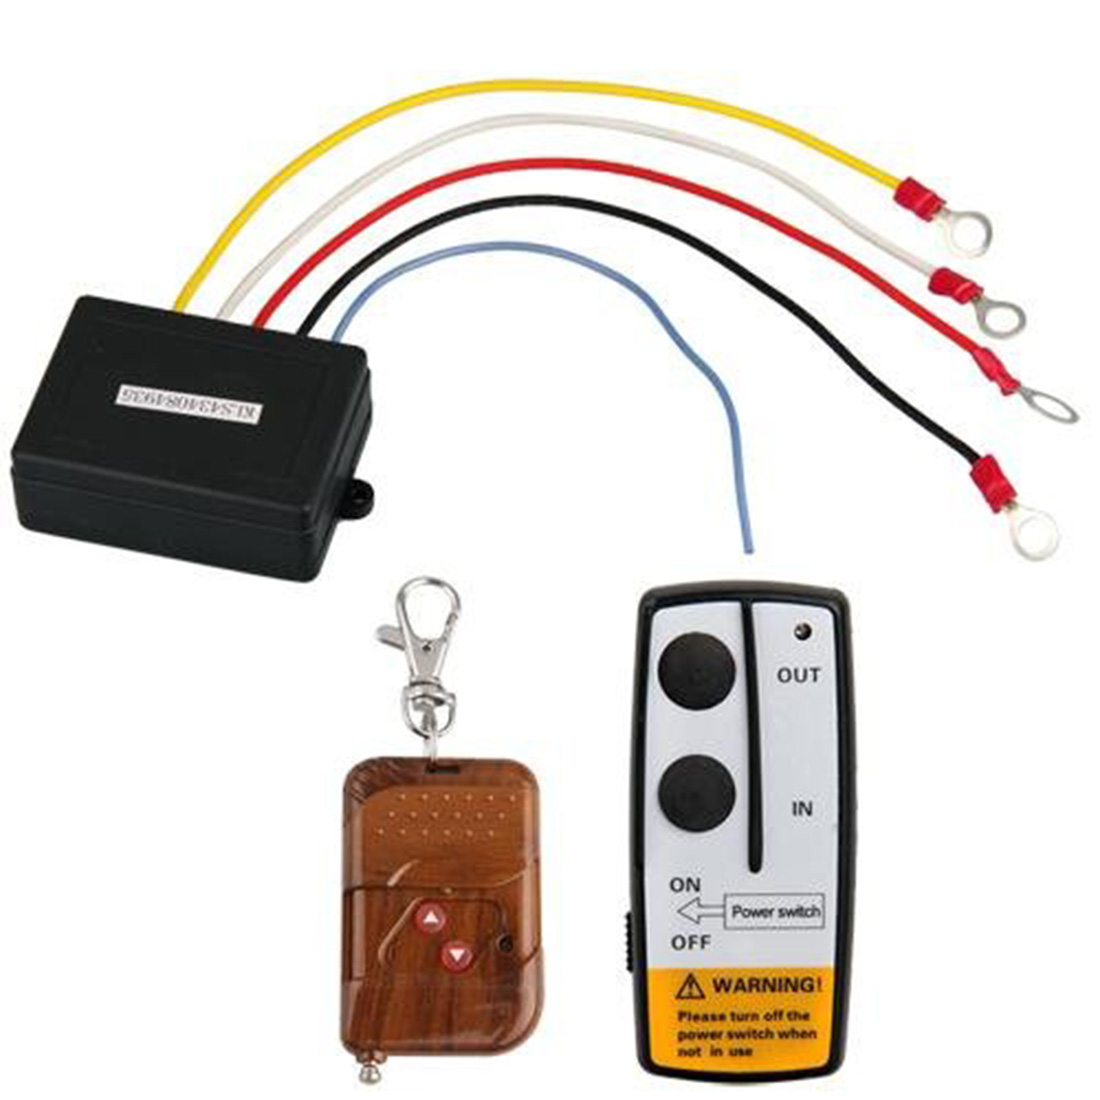 Marsnaska Brand new and high quality 50ft 12V 12 Volt Wireless Remote Control Set For Truck Jeep ATV Winch